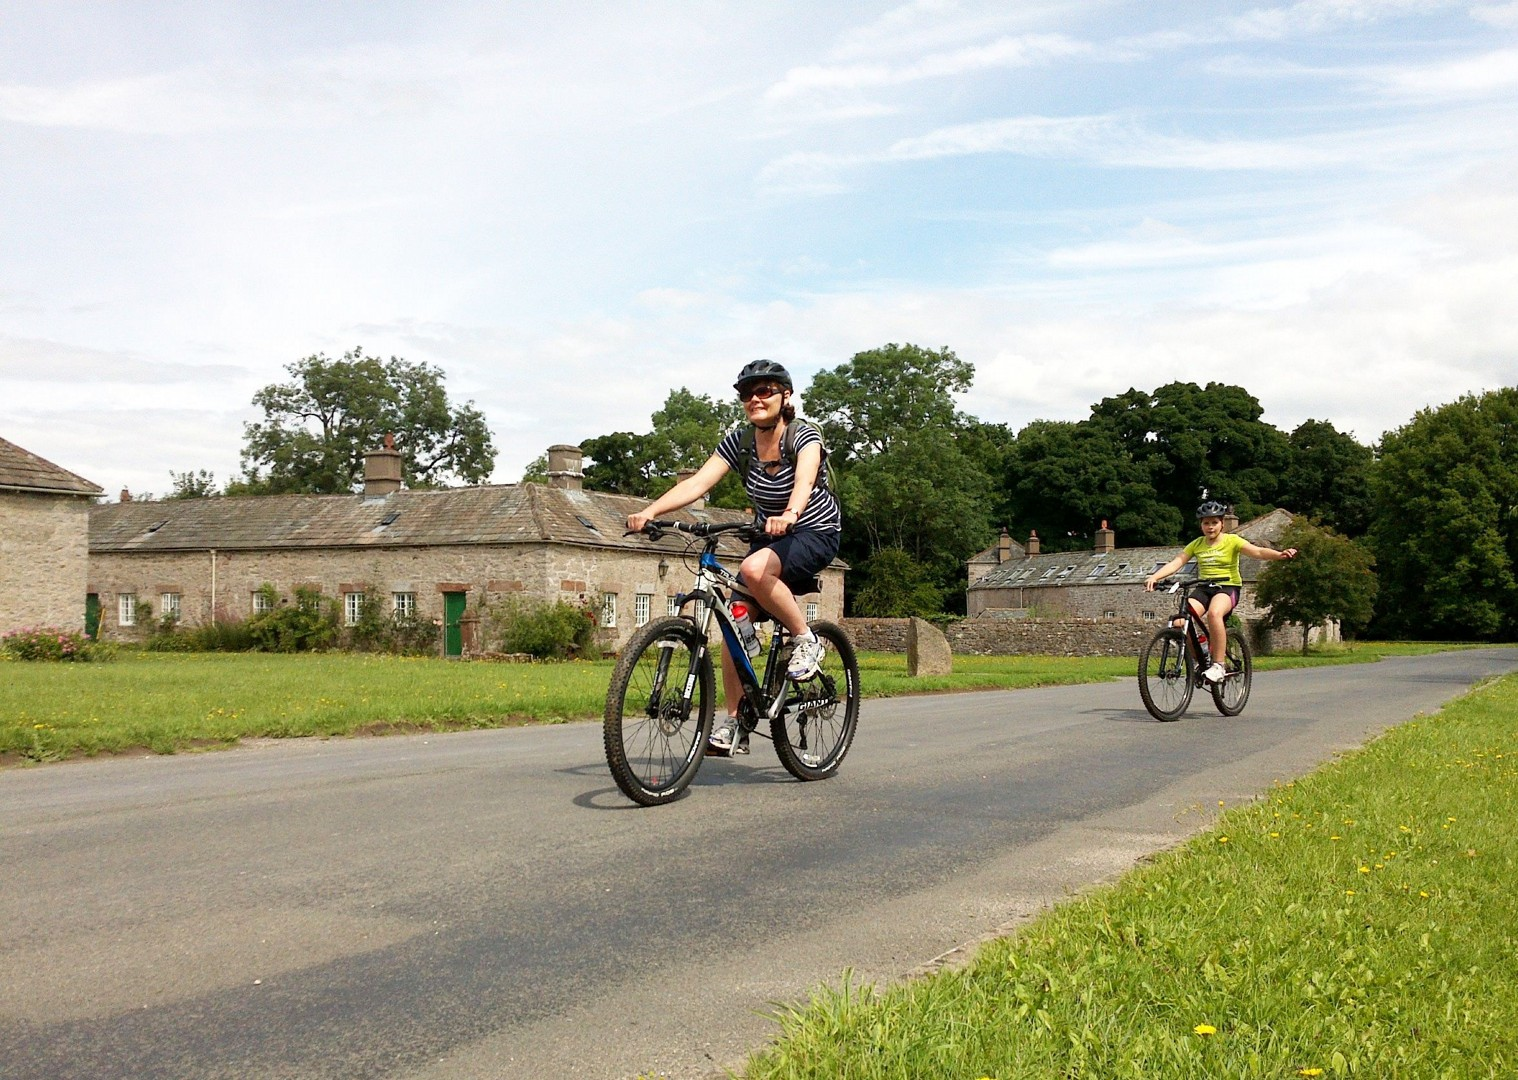 guided-uk-cycling-holiday-family-lake-district.jpg - UK - Lake District - Guided Family Bike Skills - Family Cycling